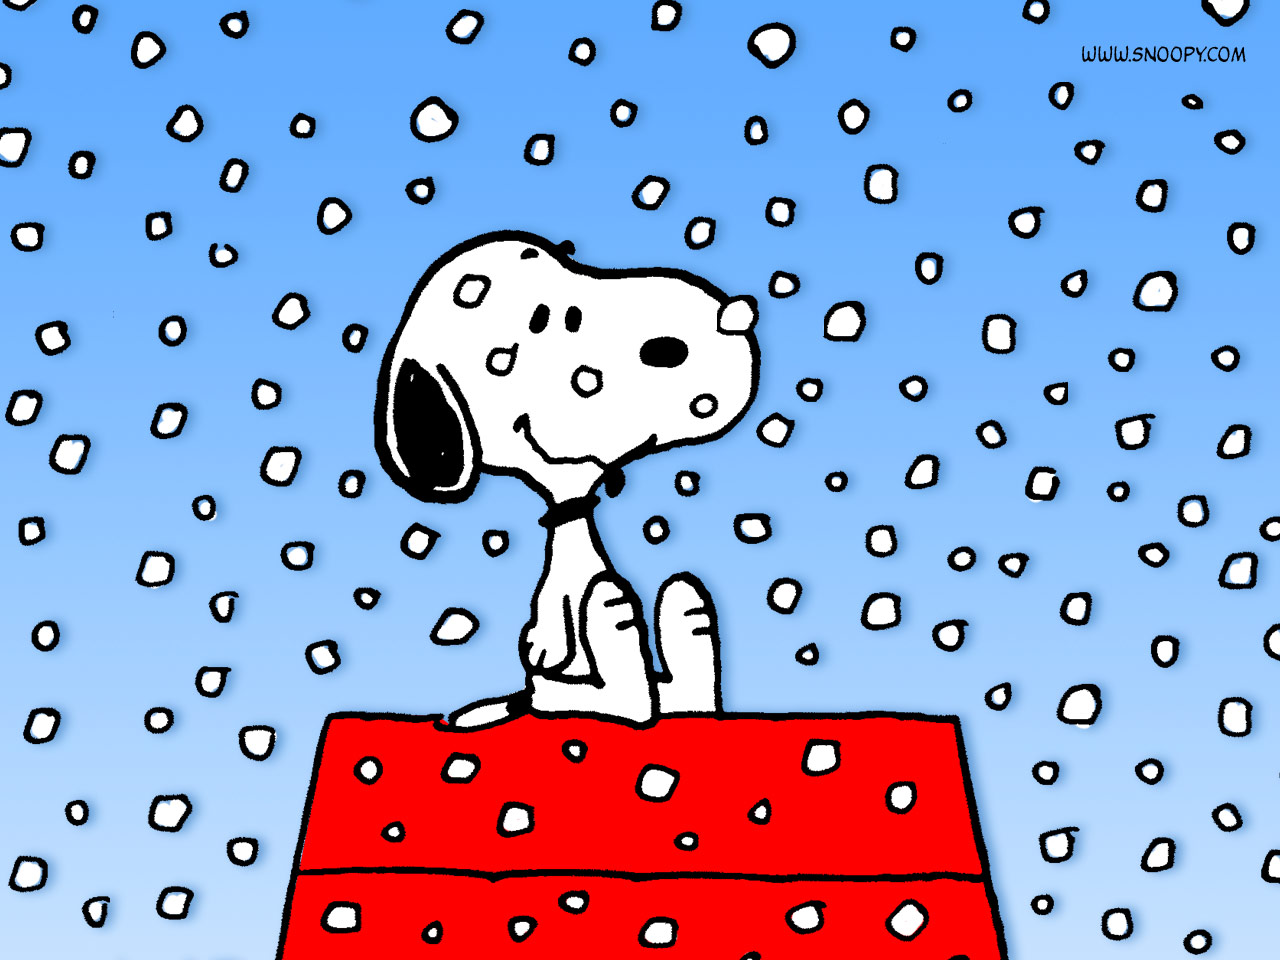 snoopy winter wallpaper   get domain pictures   getdomainvidscom 1280x960